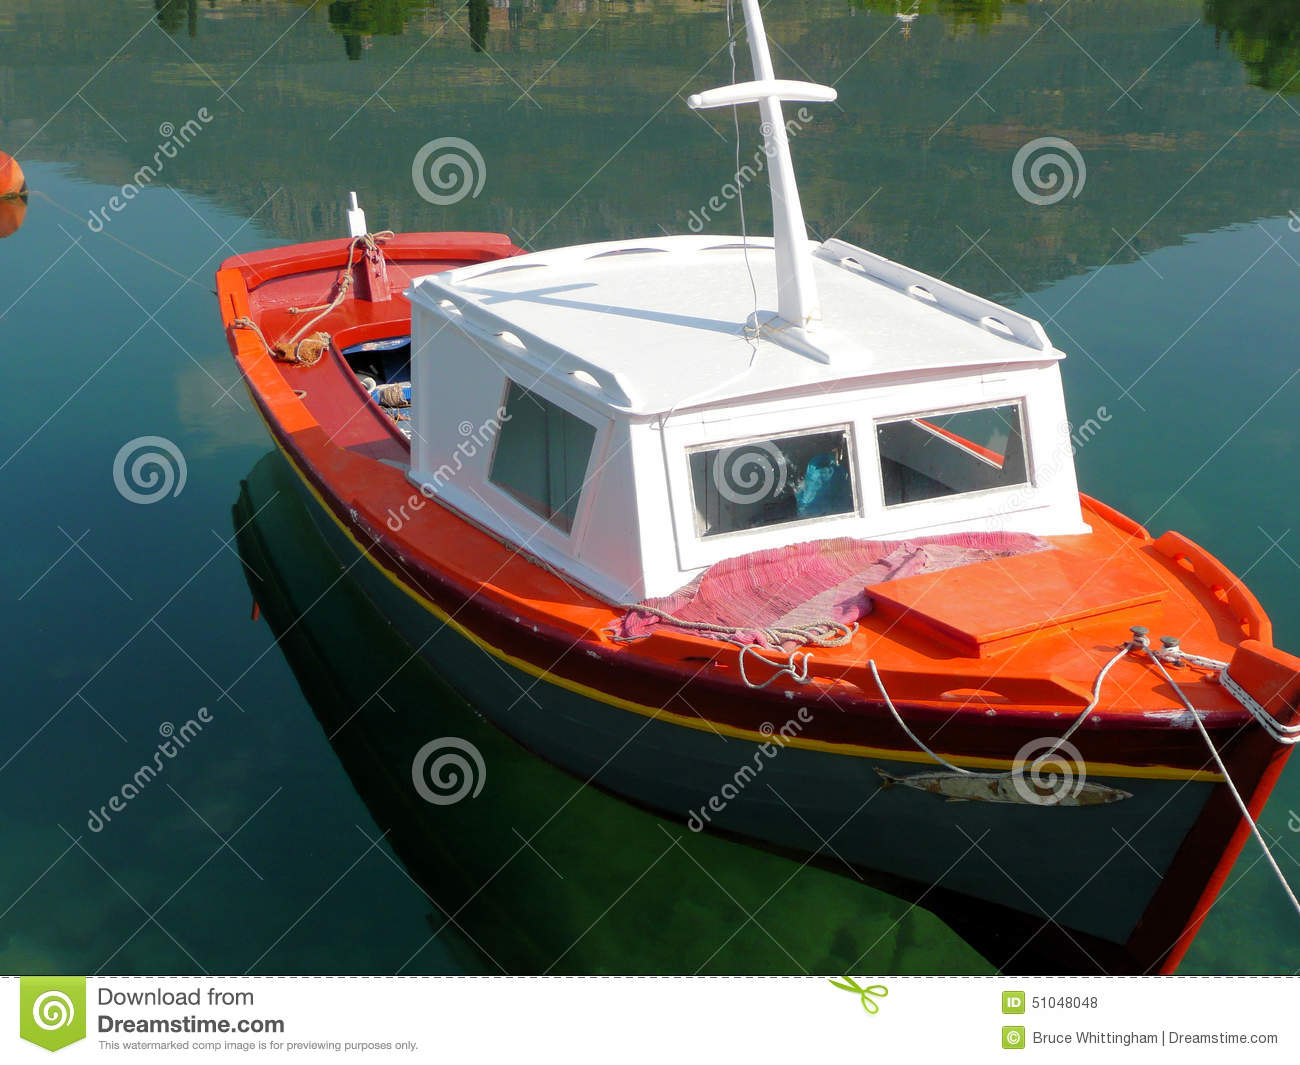 Small Fishing Boat Stock Photo - Image: 51048048